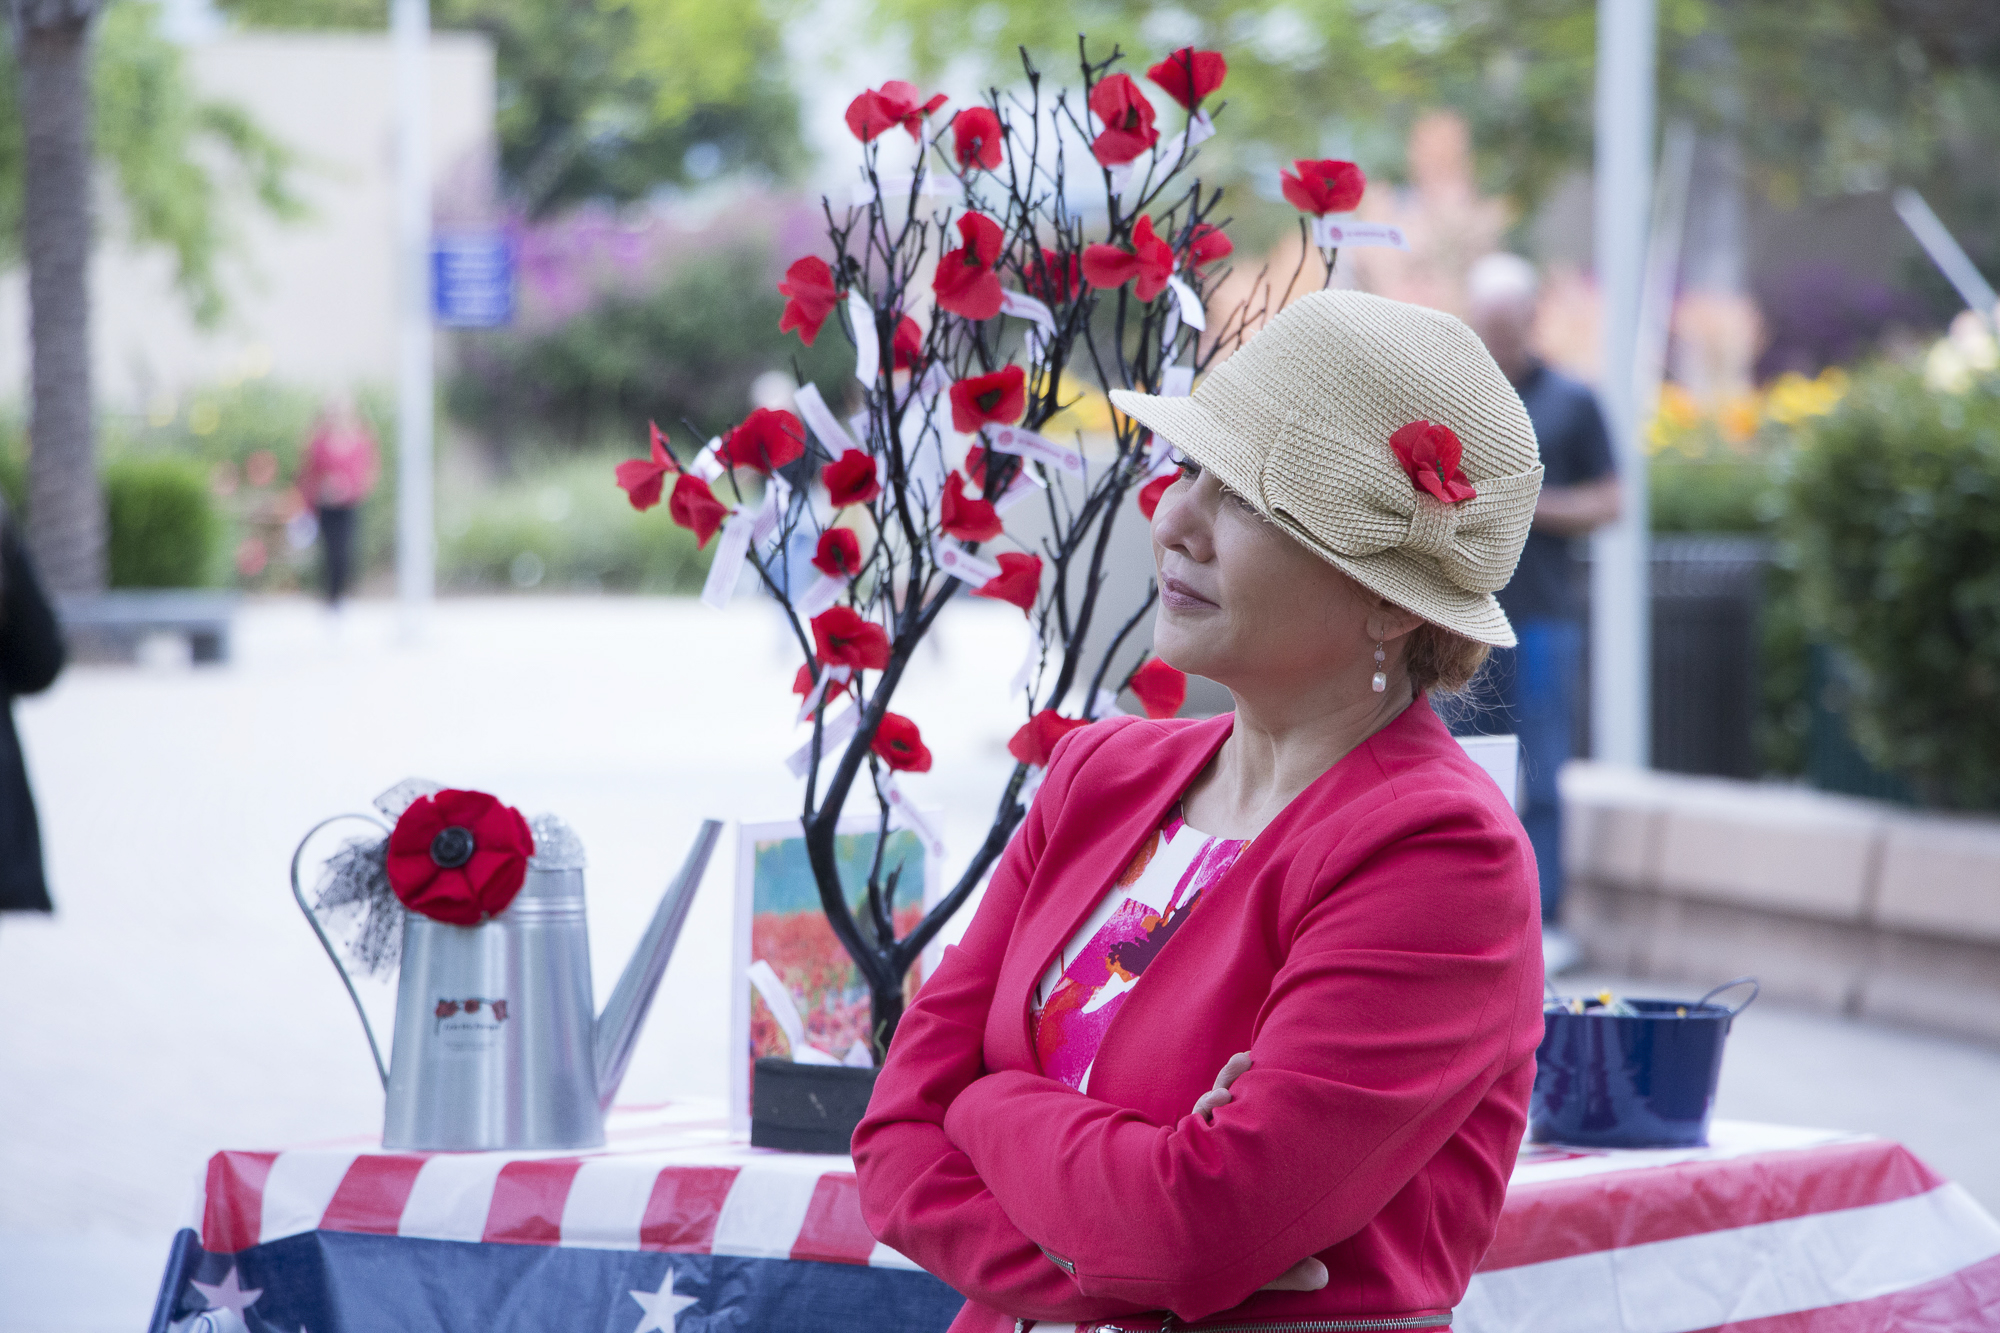 Cynthia Gonzales, a professor at Santa Monica College and a member of the American Legion Auxillary, stood off to the side, in front of a display with red poppys during a speech at the Memorial Day Commemoration on Thursday, May 25 in Santa Monica, California. (Wilson Gomez/Corsair Photo)